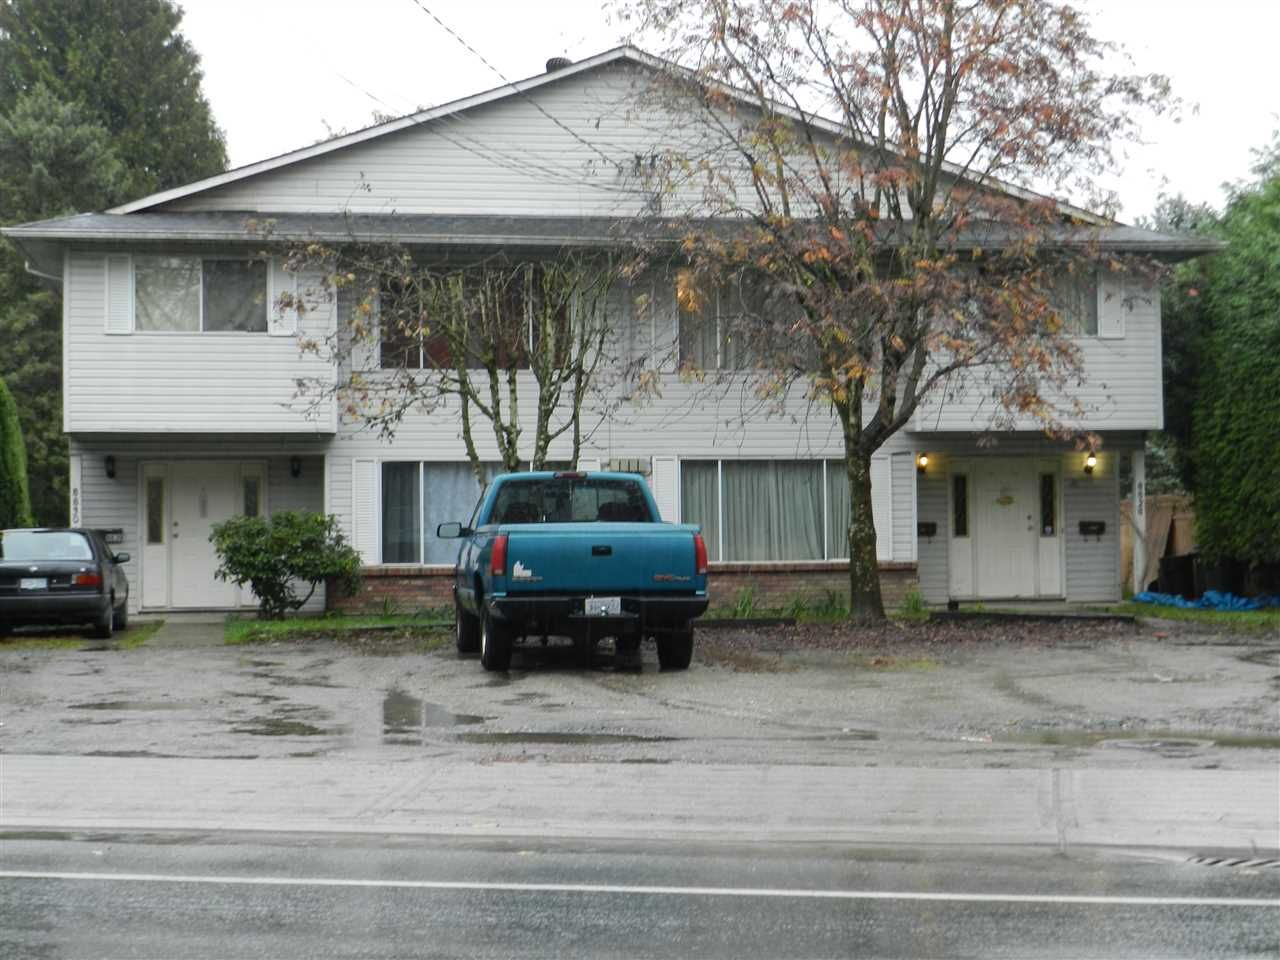 Main Photo: 8828 - 8830 ASHWELL Road in Chilliwack: Chilliwack W Young-Well Duplex for sale : MLS®# R2119904